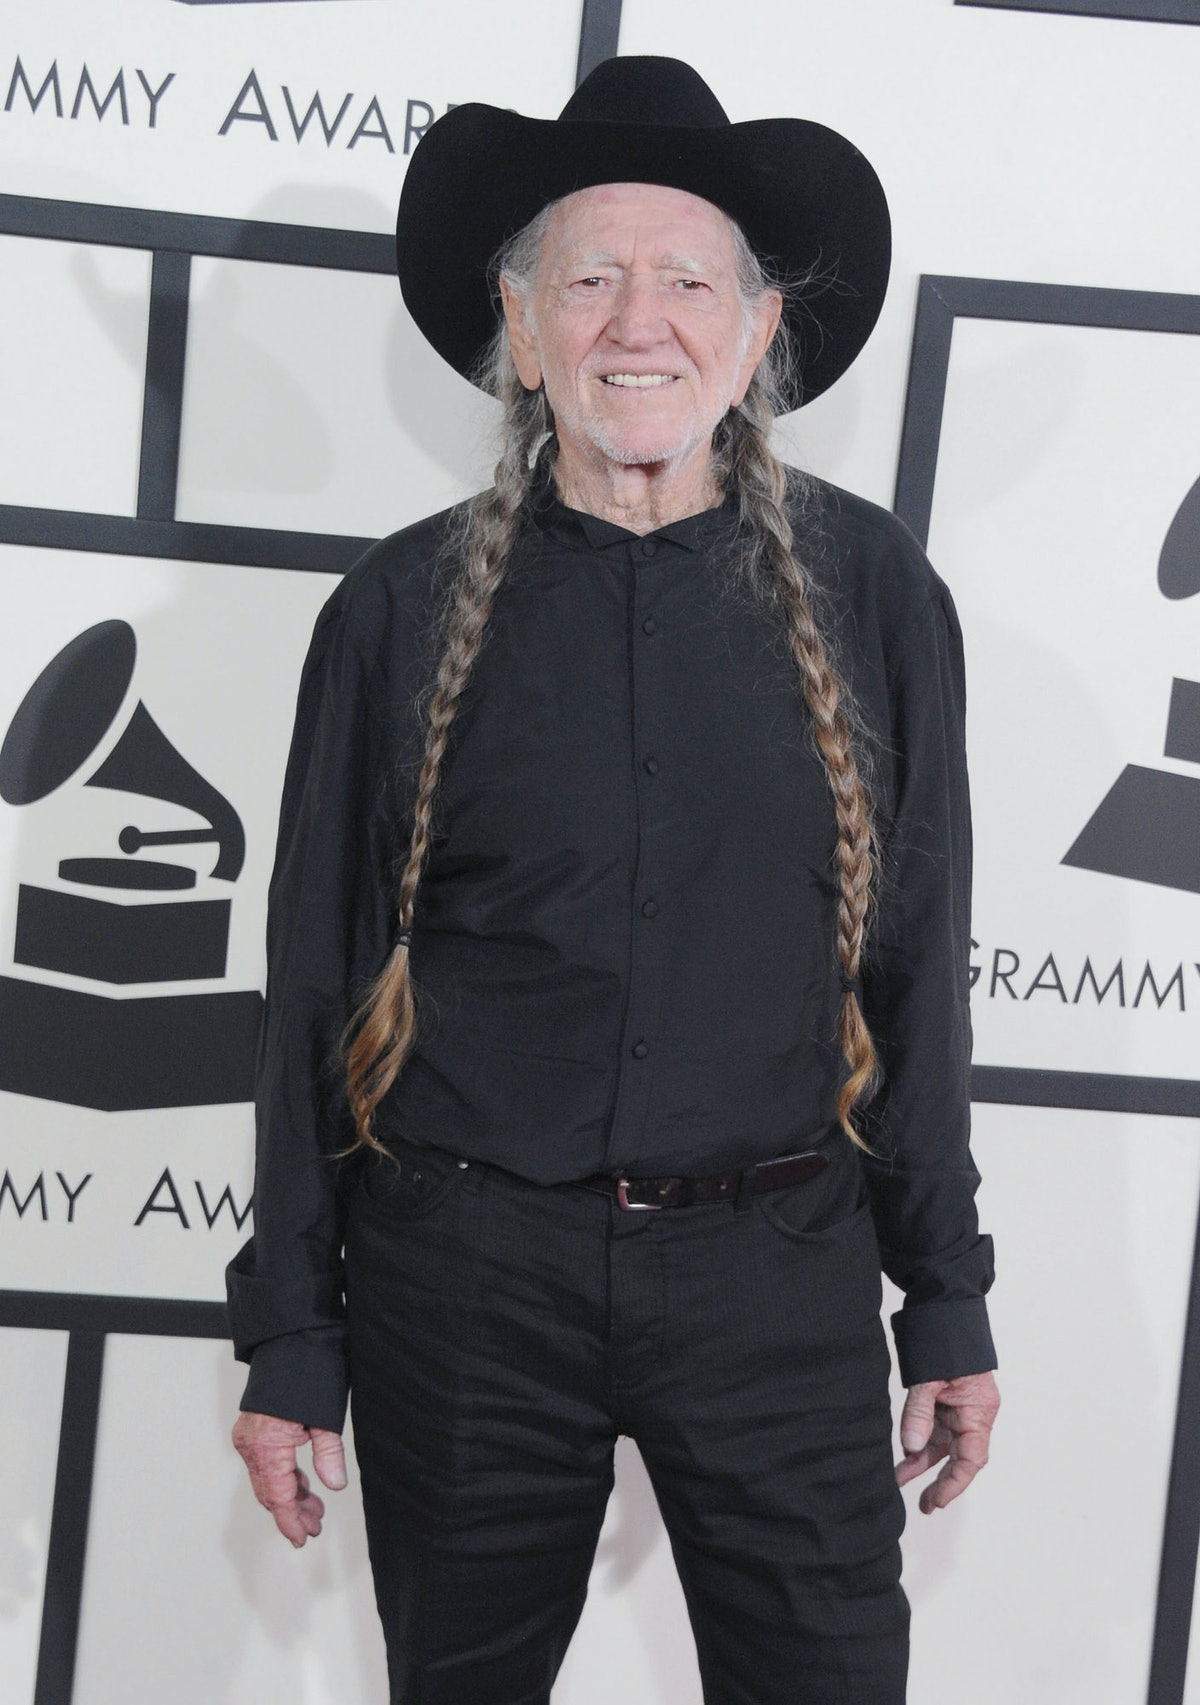 __Willie Nelson:__ A certain freedom comes with reaching the milestone of an 80th birthday. Like wea...